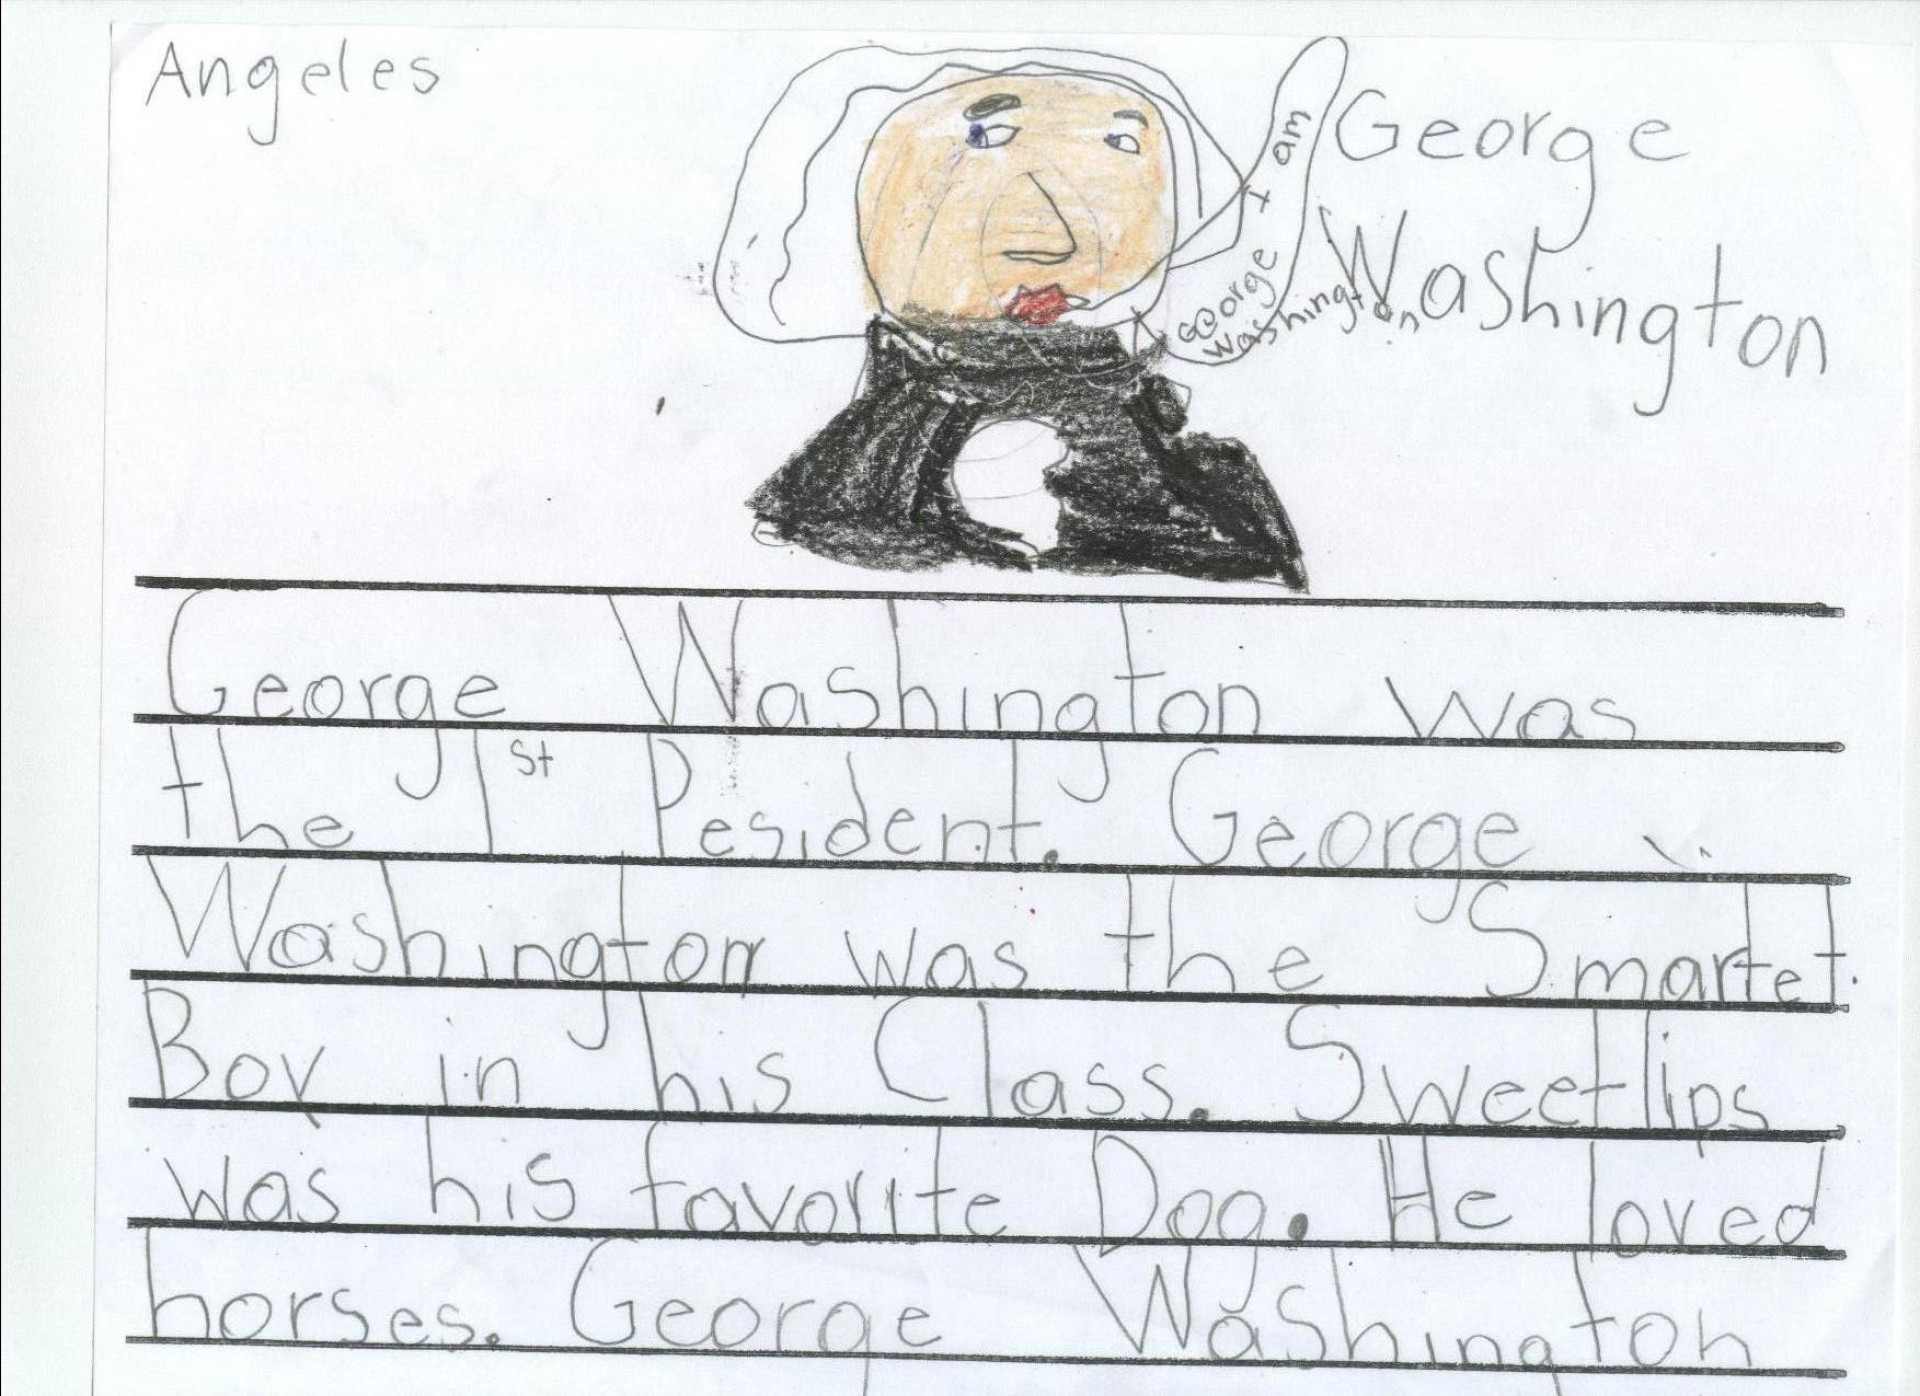 012 Essay Example George Washington Student Writing Impressive Prompt University Essays That Worked Junior Cert 1920